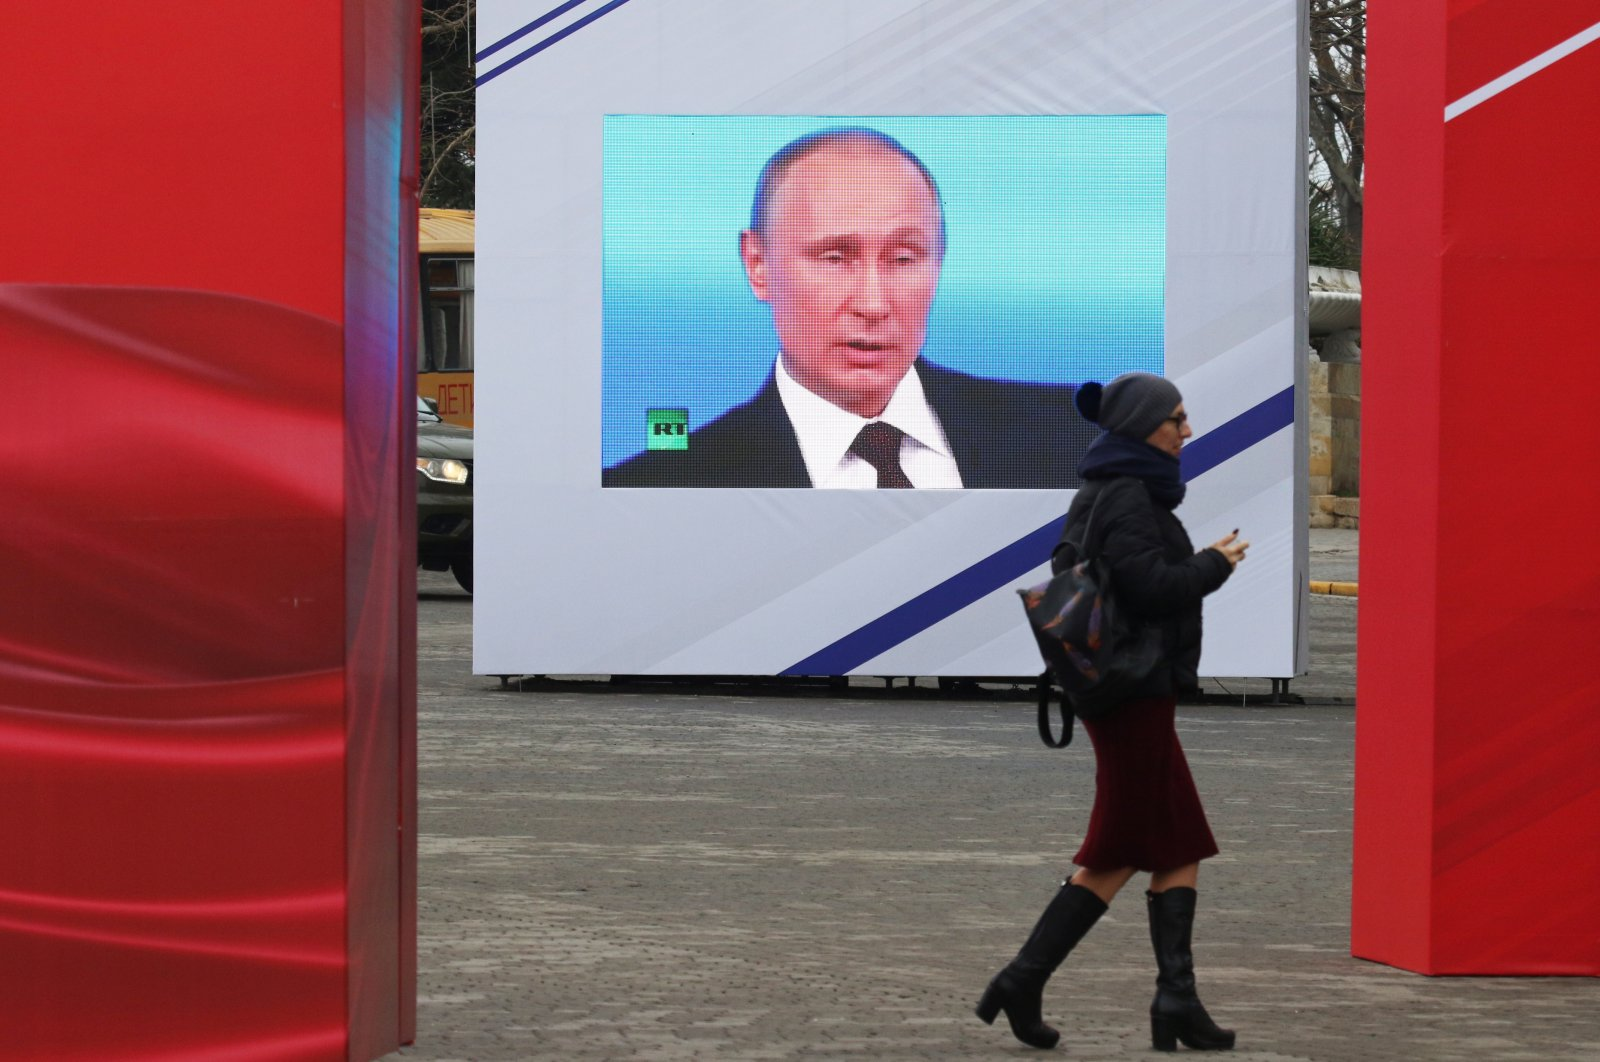 A woman walks past a screen showing Russian President Vladimir Putin during celebrations of the Defender of the Fatherland Day in Sevastopol, Crimea, Feb. 23, 2021. (REUTERS Photo)